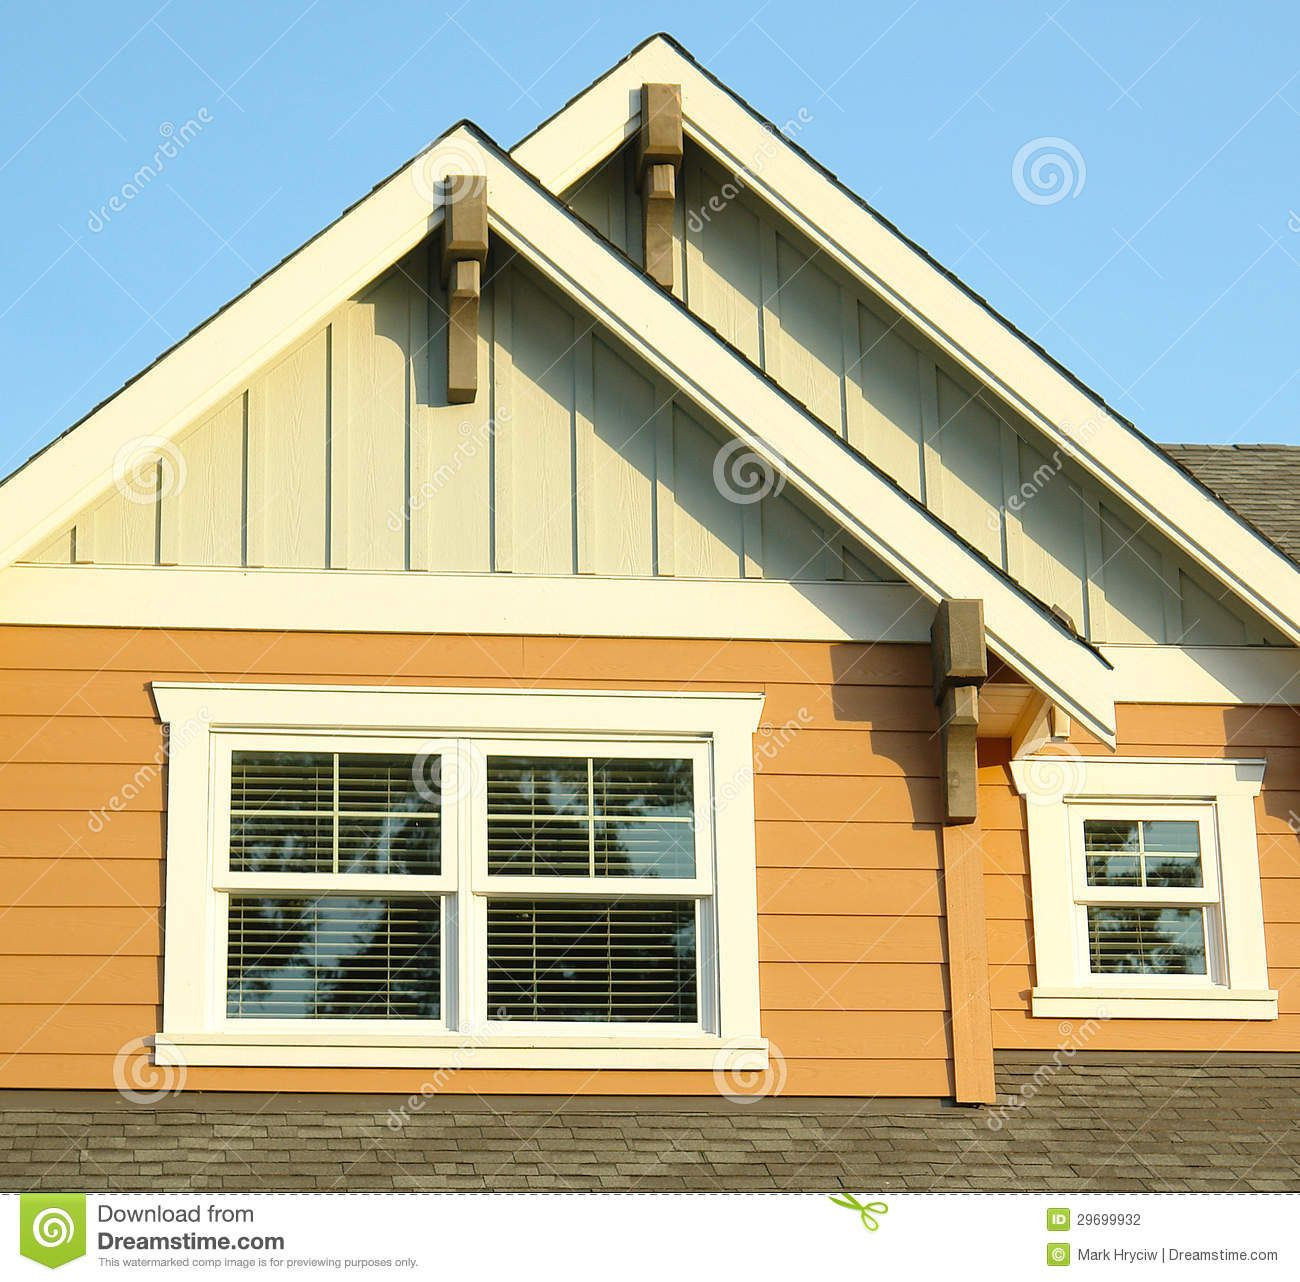 House Siding Exterior Details - Download From Over 66 Million High ...